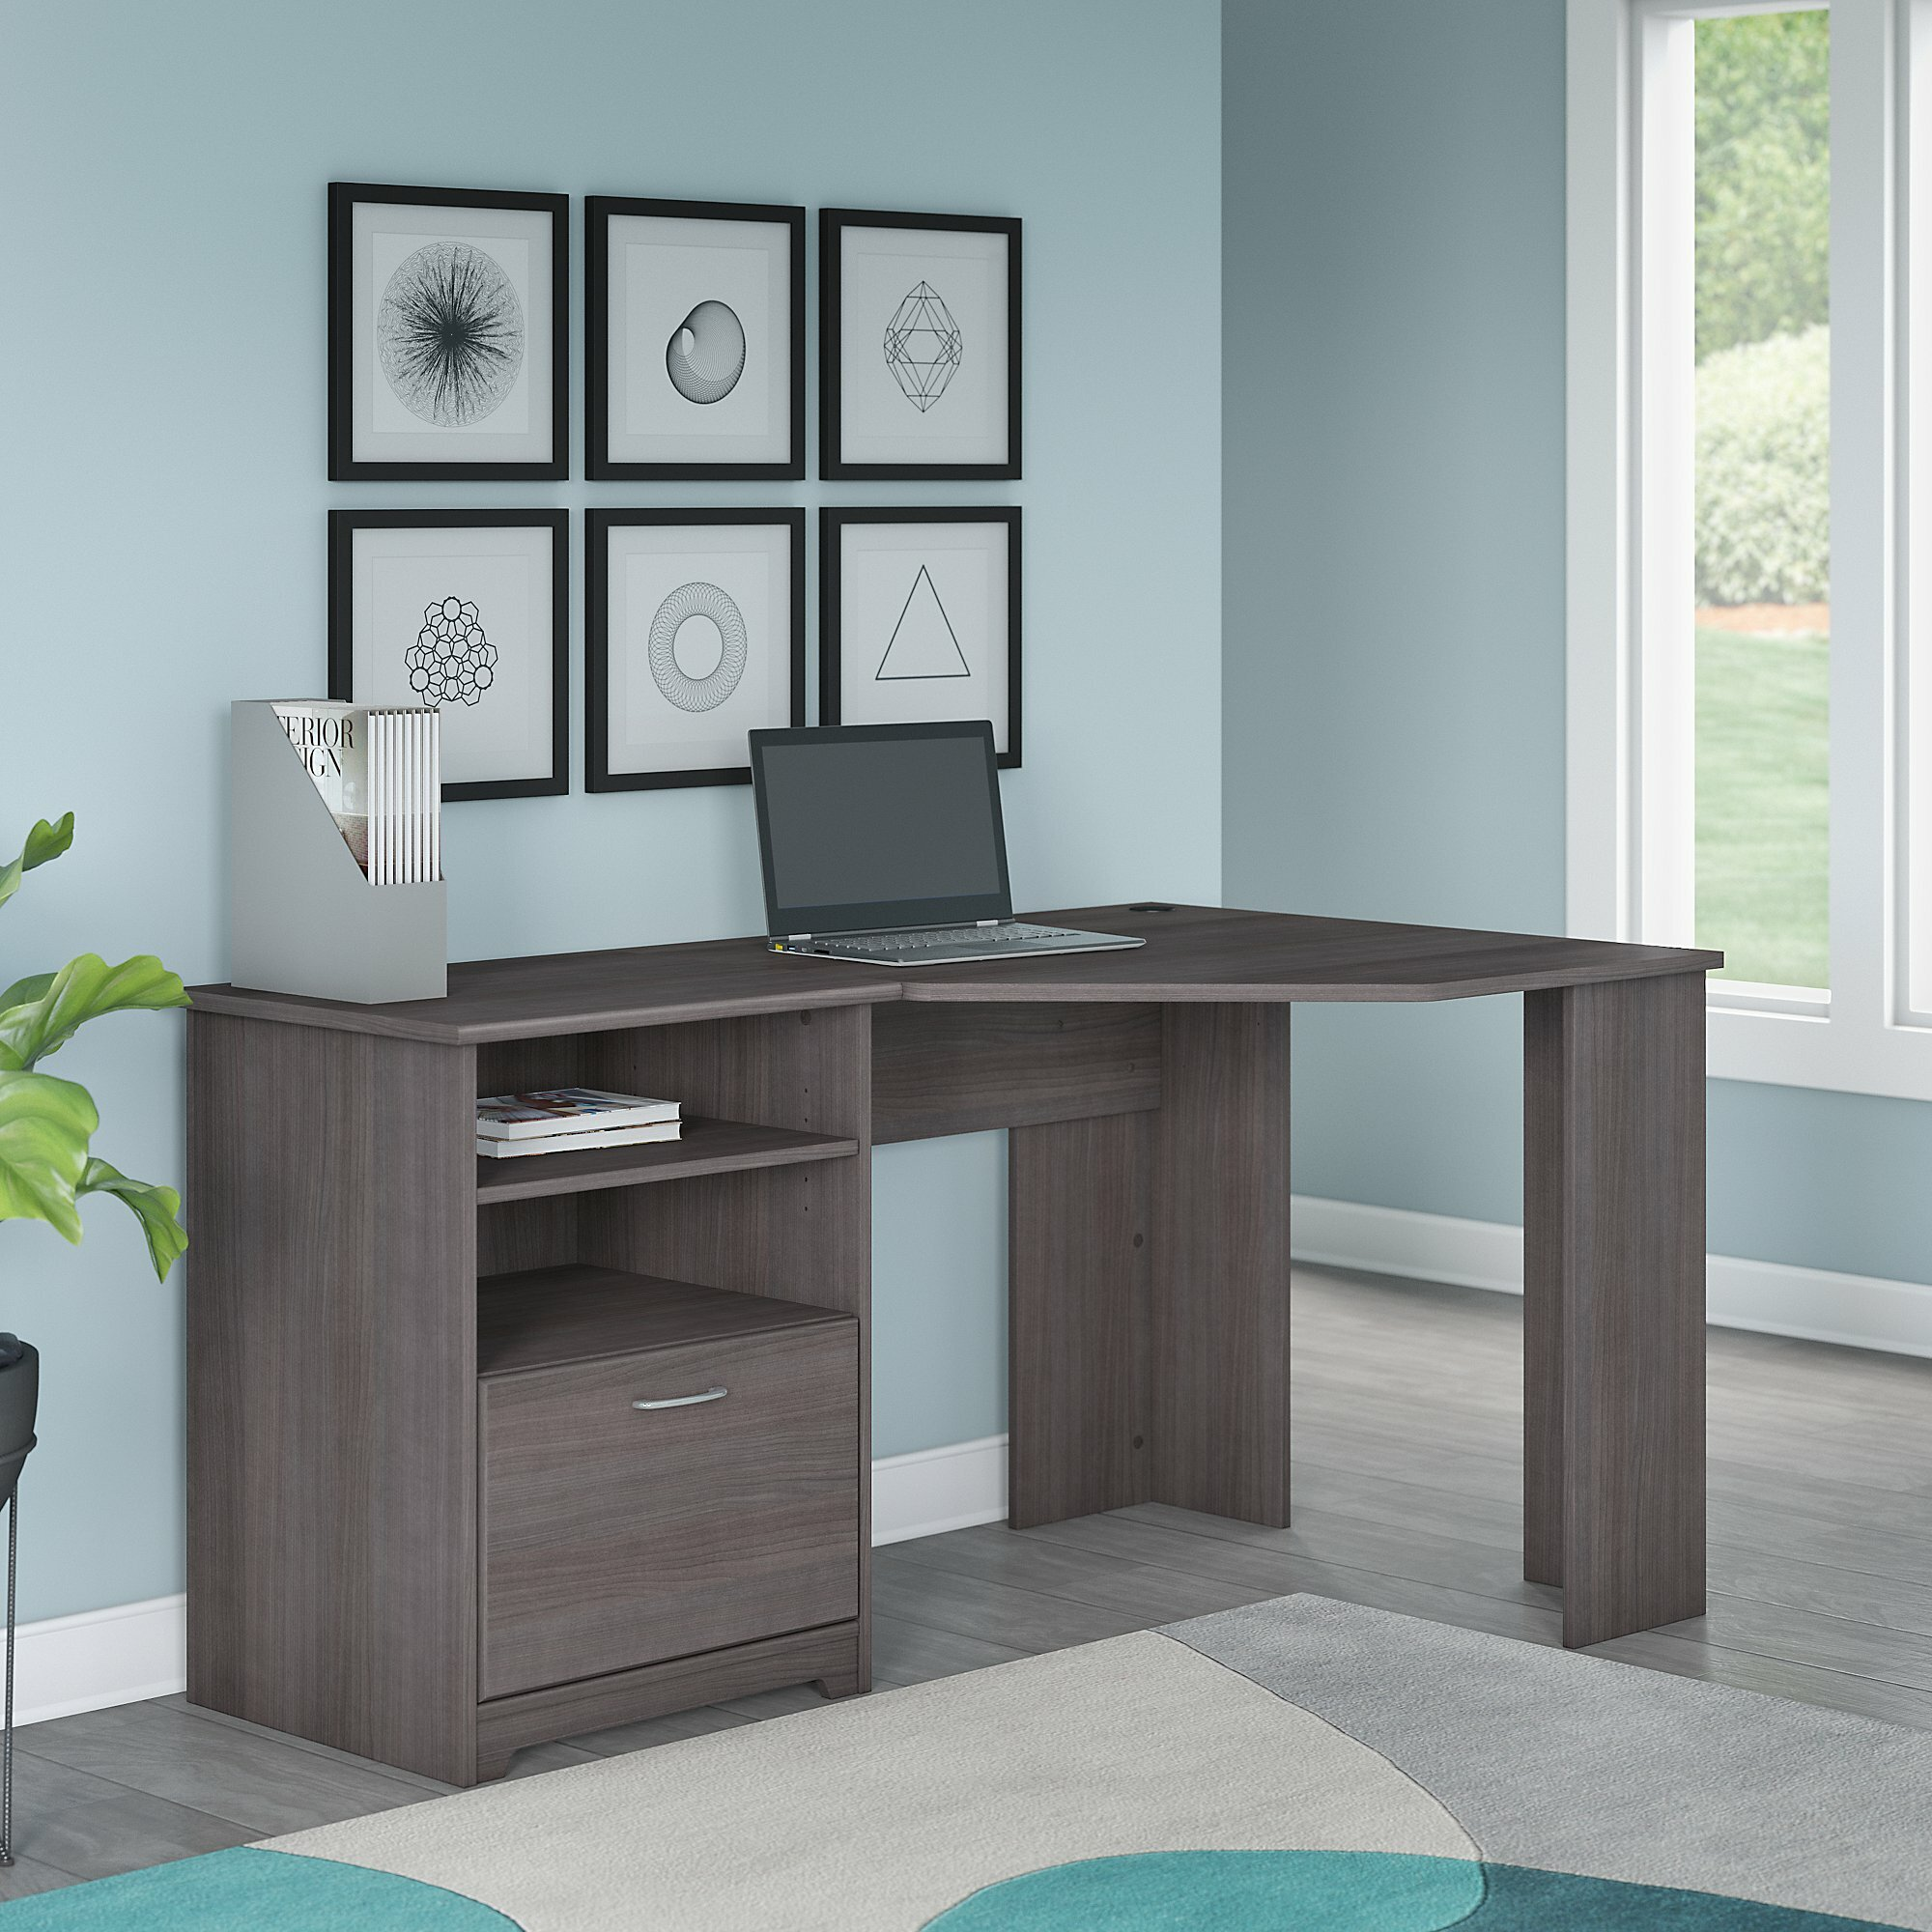 ikea linnmonadils office catalog en desks adils grey brown and linnmon cm tables home gray black desk